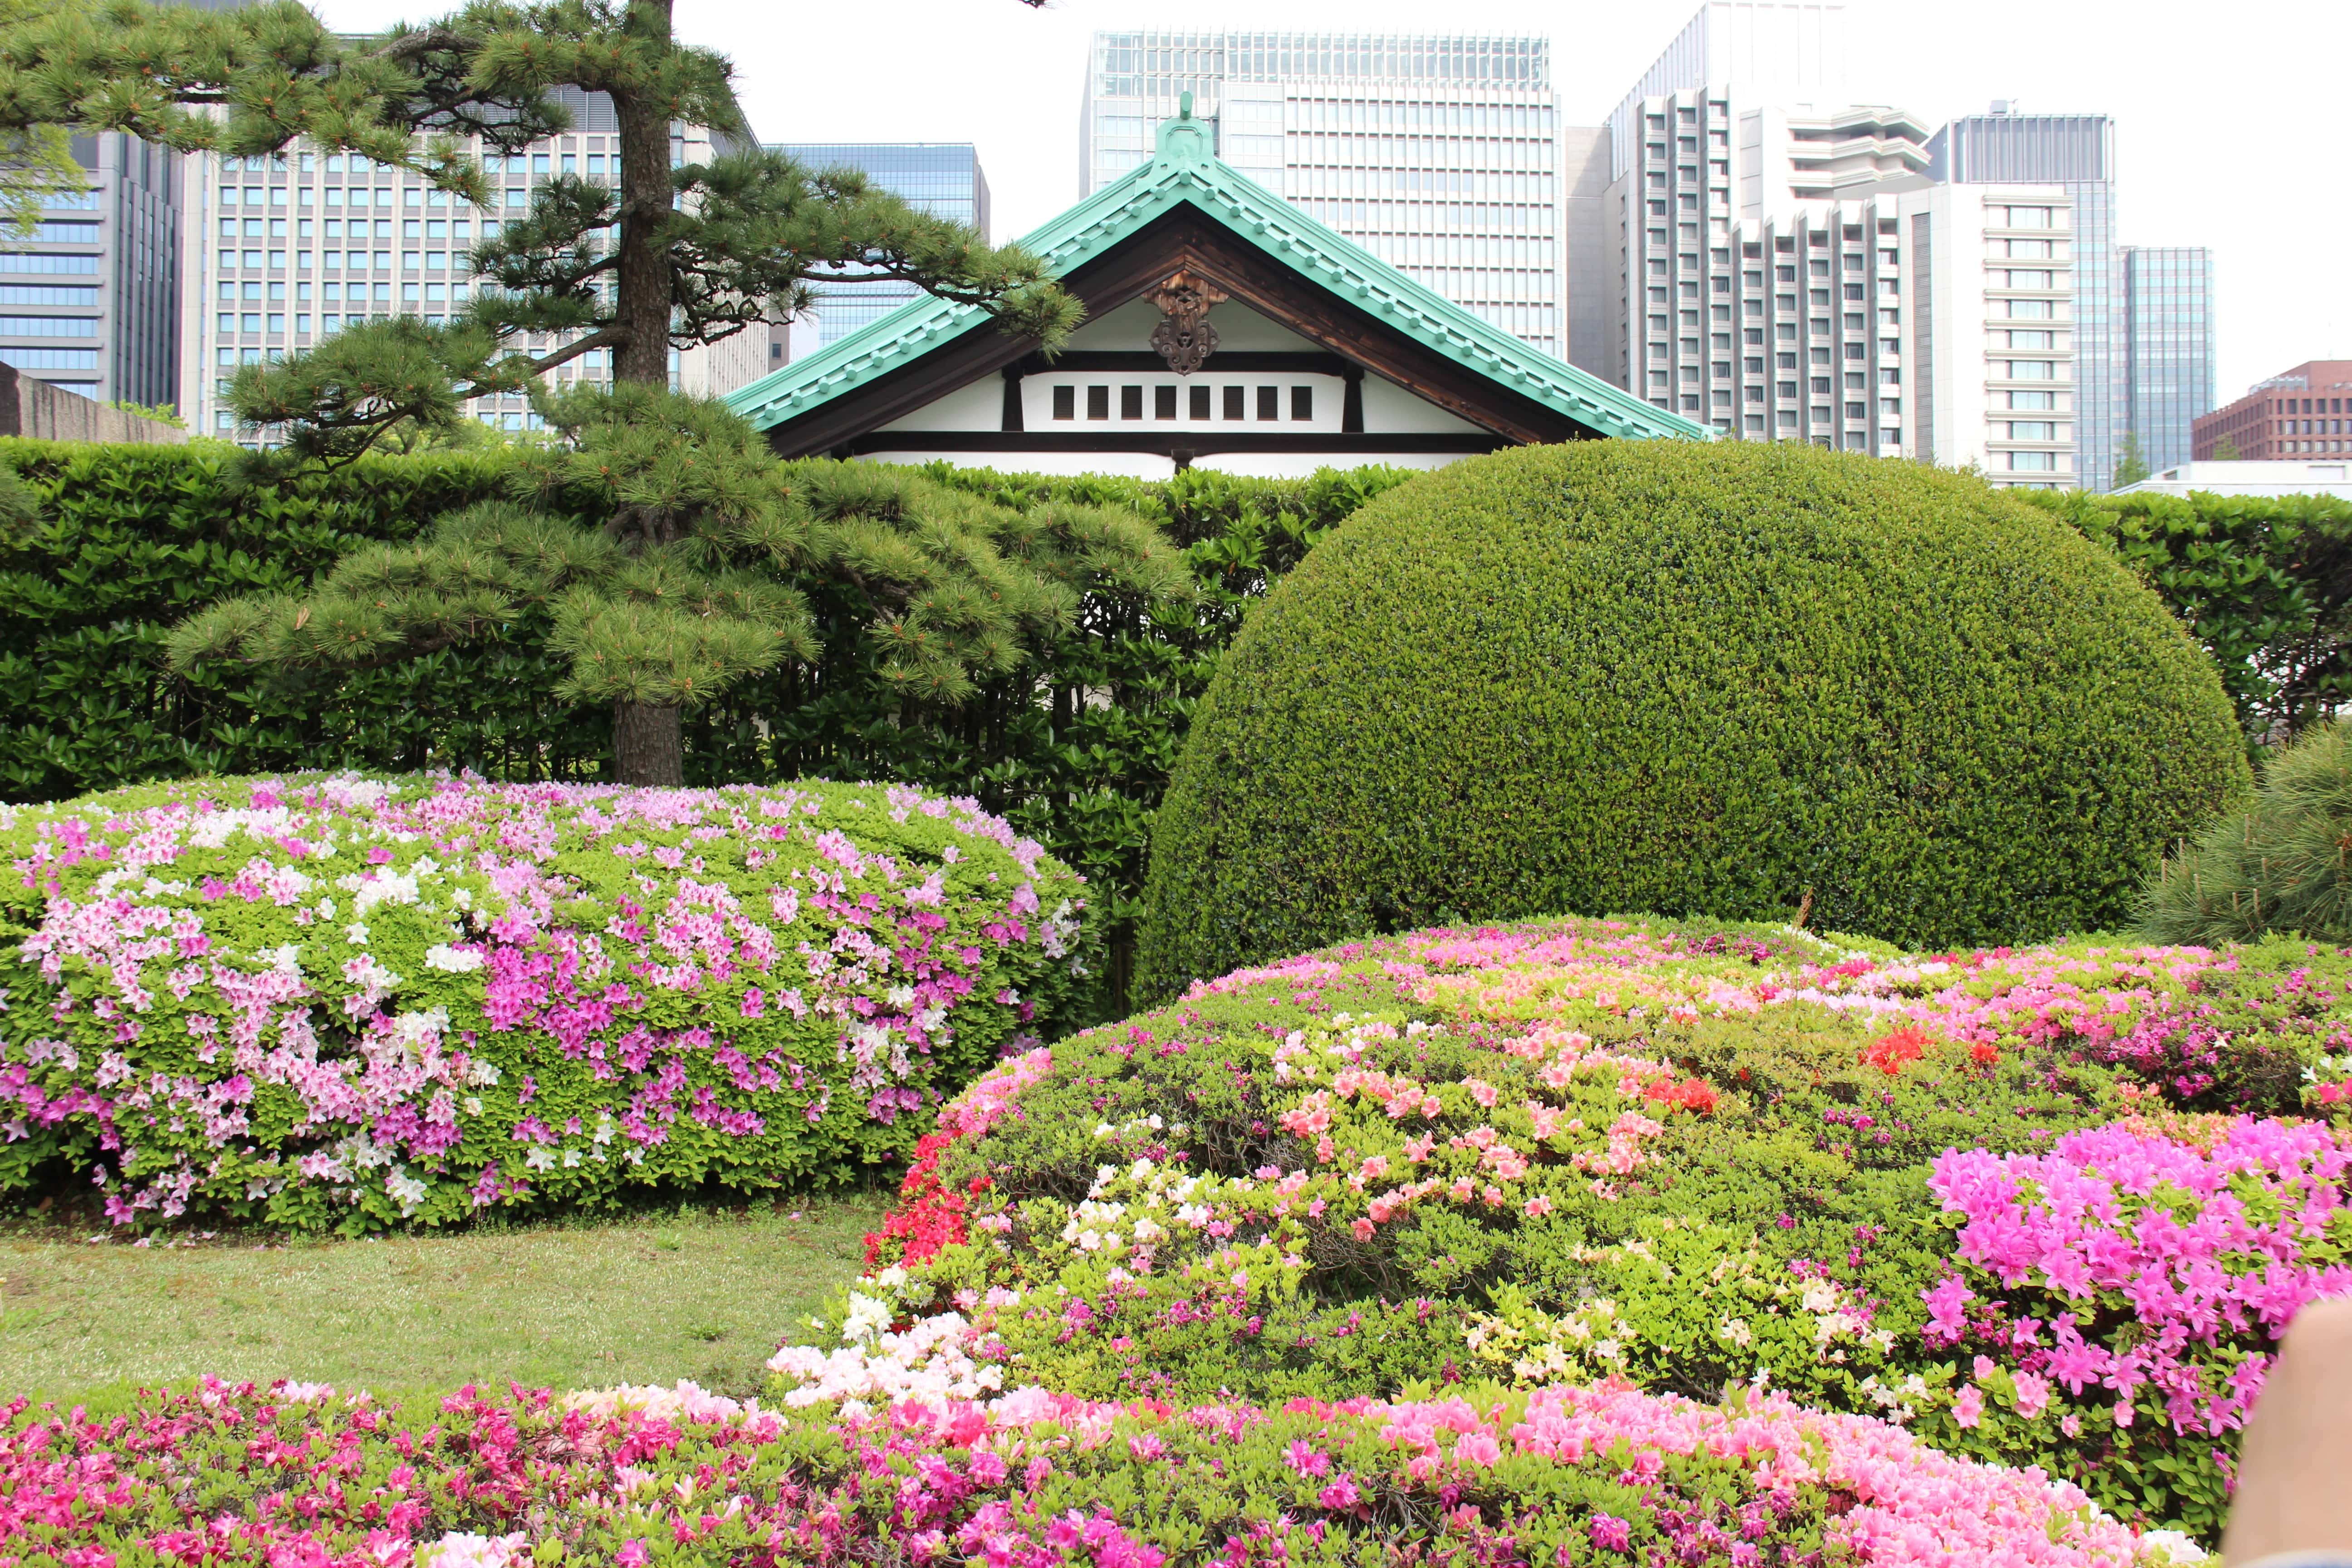 The Tokyo Imperial Gardens are a lovely spot for Tokyo sightseeing